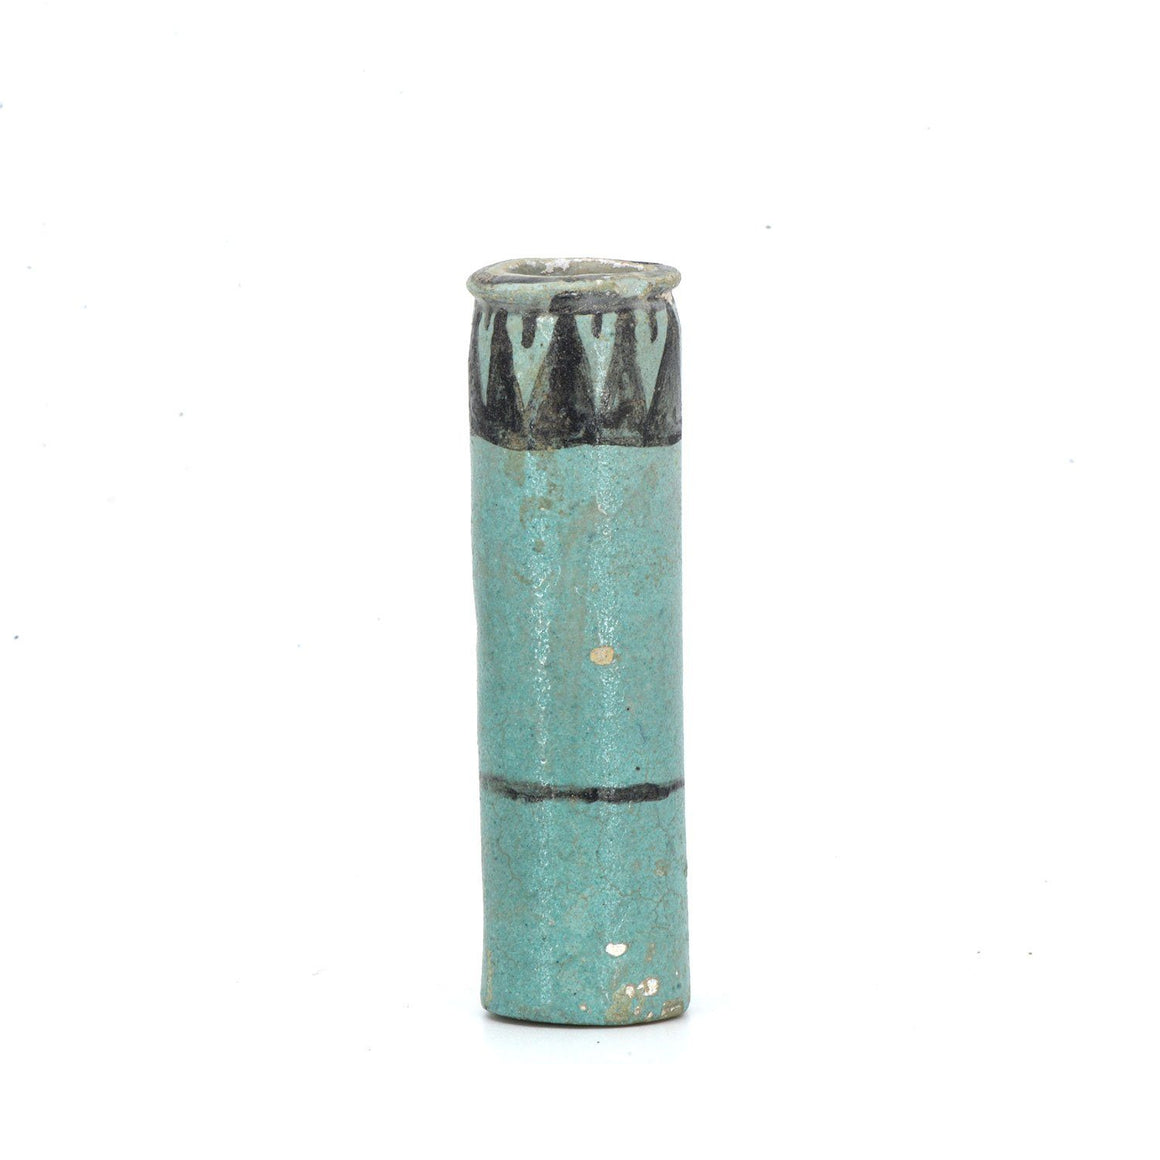 * An Egyptian Faience Kohl Cylinder, 18th Dynasty, ca. 1550 - 1295 BC - Sands of Time Ancient Art